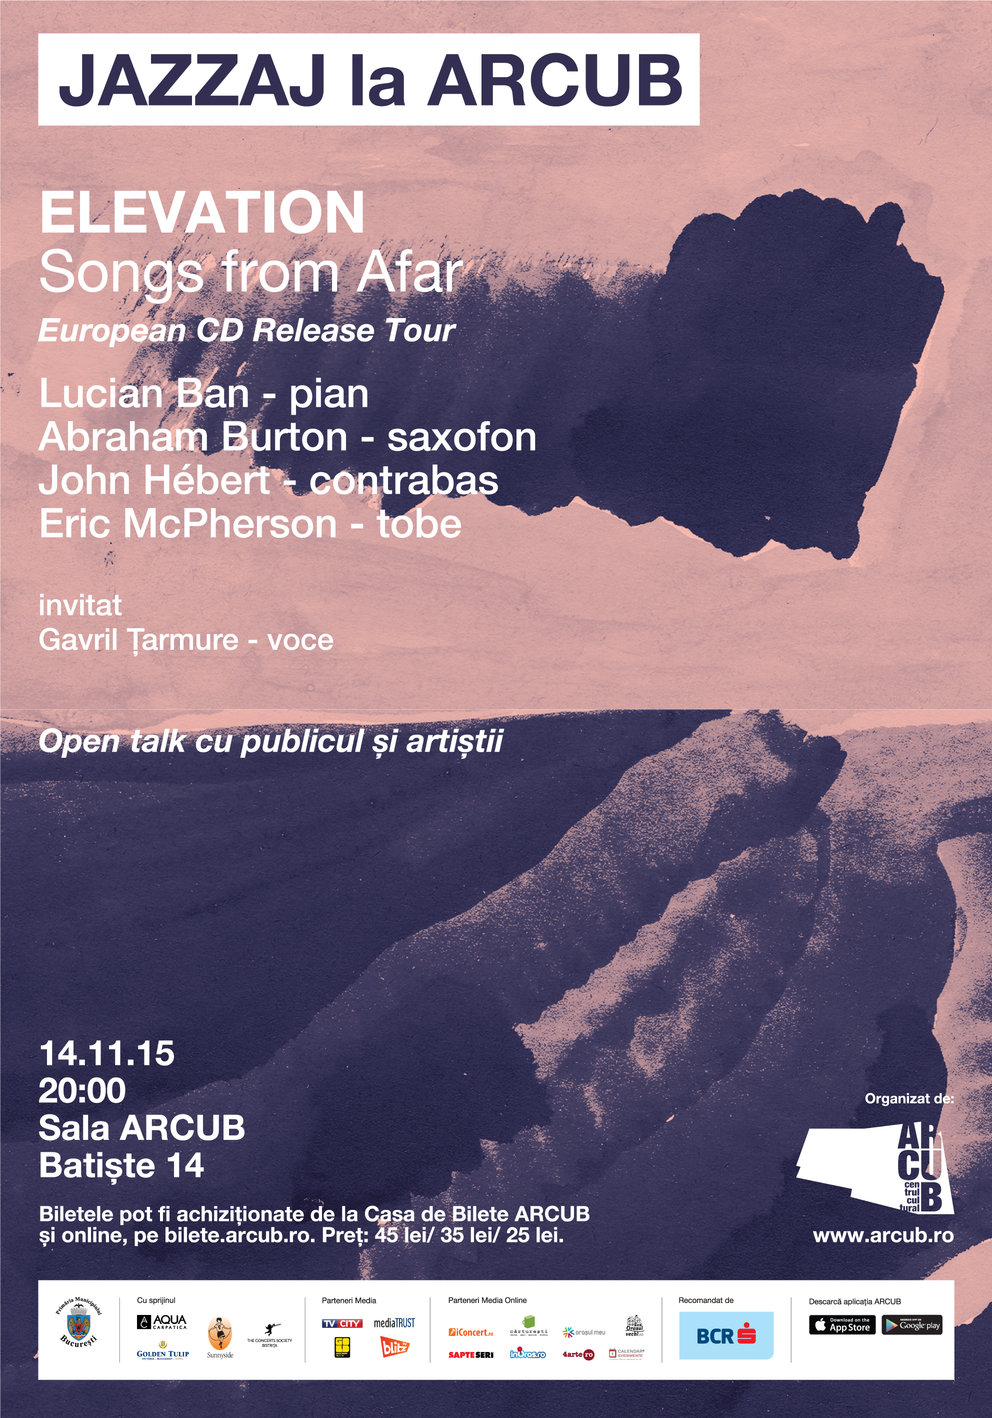 Jazzaj_la_arcub_elevation_songs_from_afar (1)